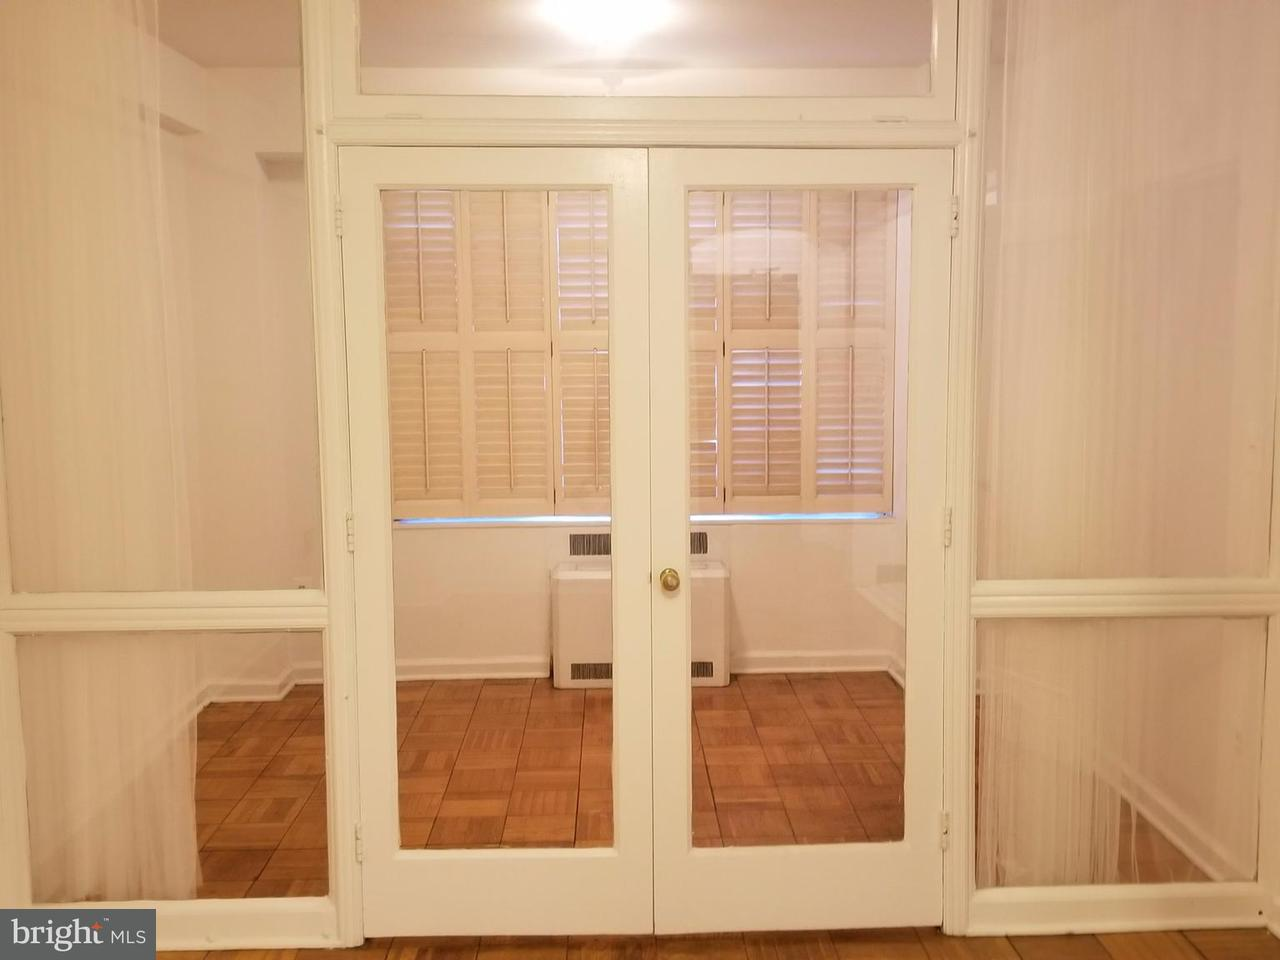 Additional photo for property listing at 1 Scott Cir NW #18  Washington, District Of Columbia 20036 United States